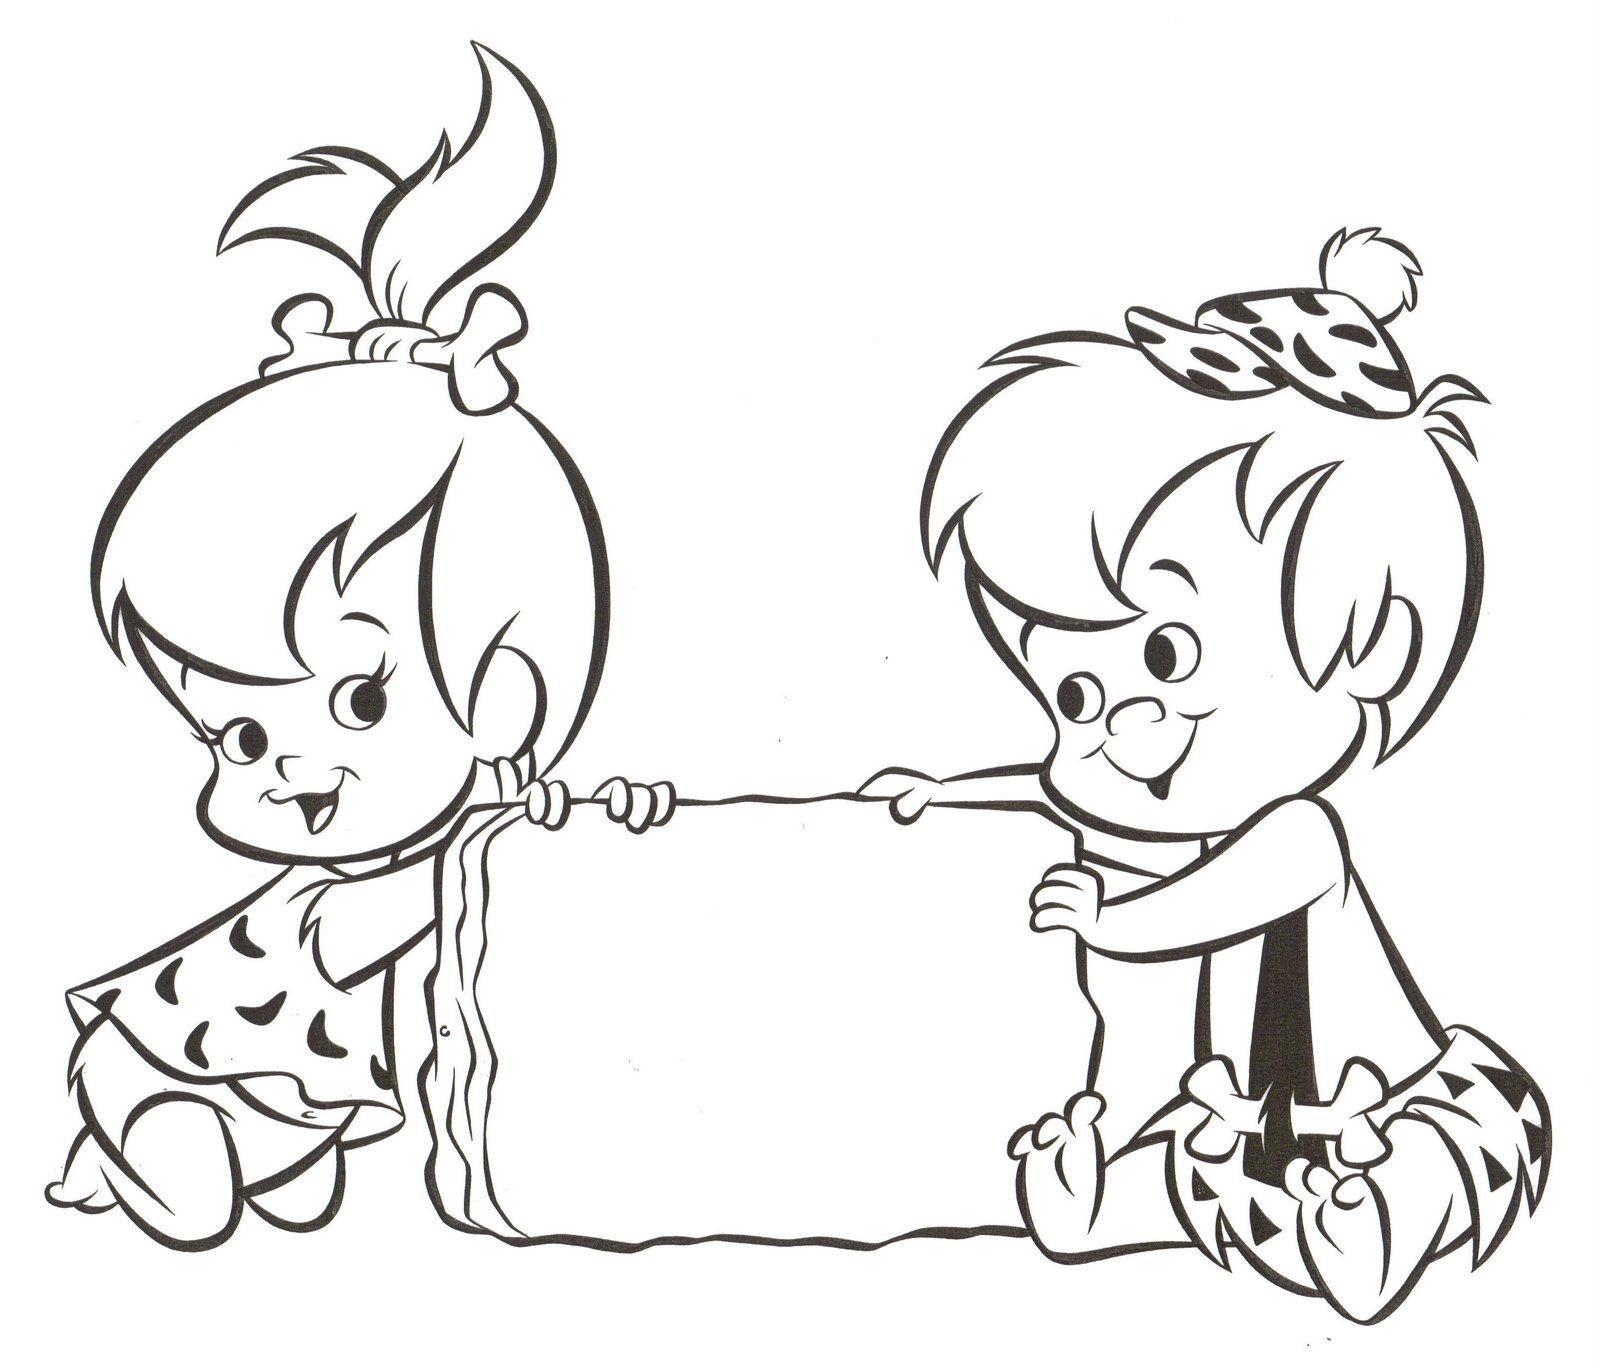 Clip Art El Chavo Del Ocho Coloring Pages pebbles and bam coloring pages download pebbels bambam cartoon dibujos de bam